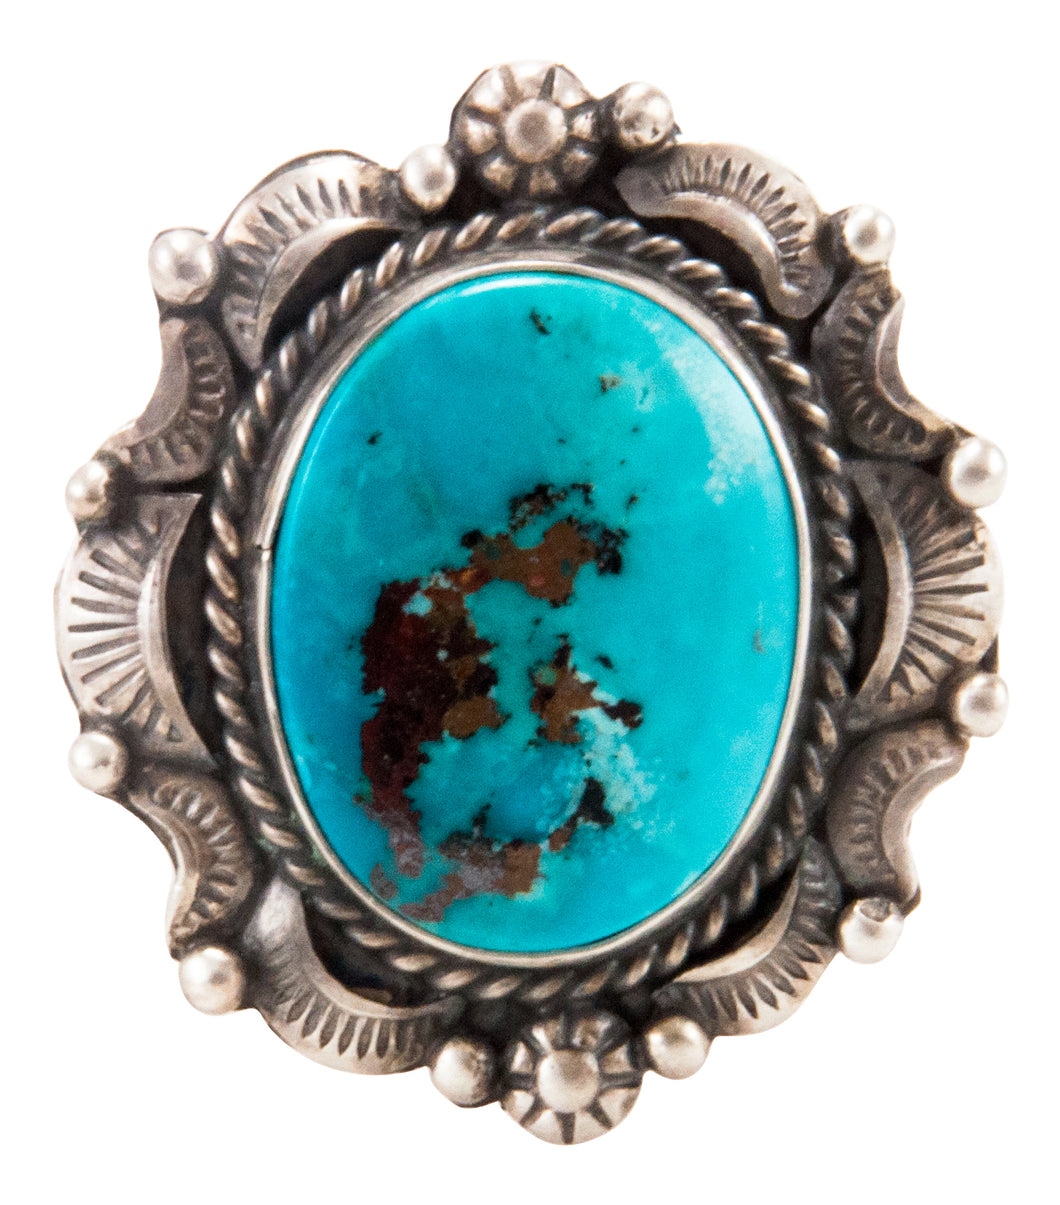 Navajo Native American Kingman Turquoise Ring Size 9 3/4 by B Lee SKU232965